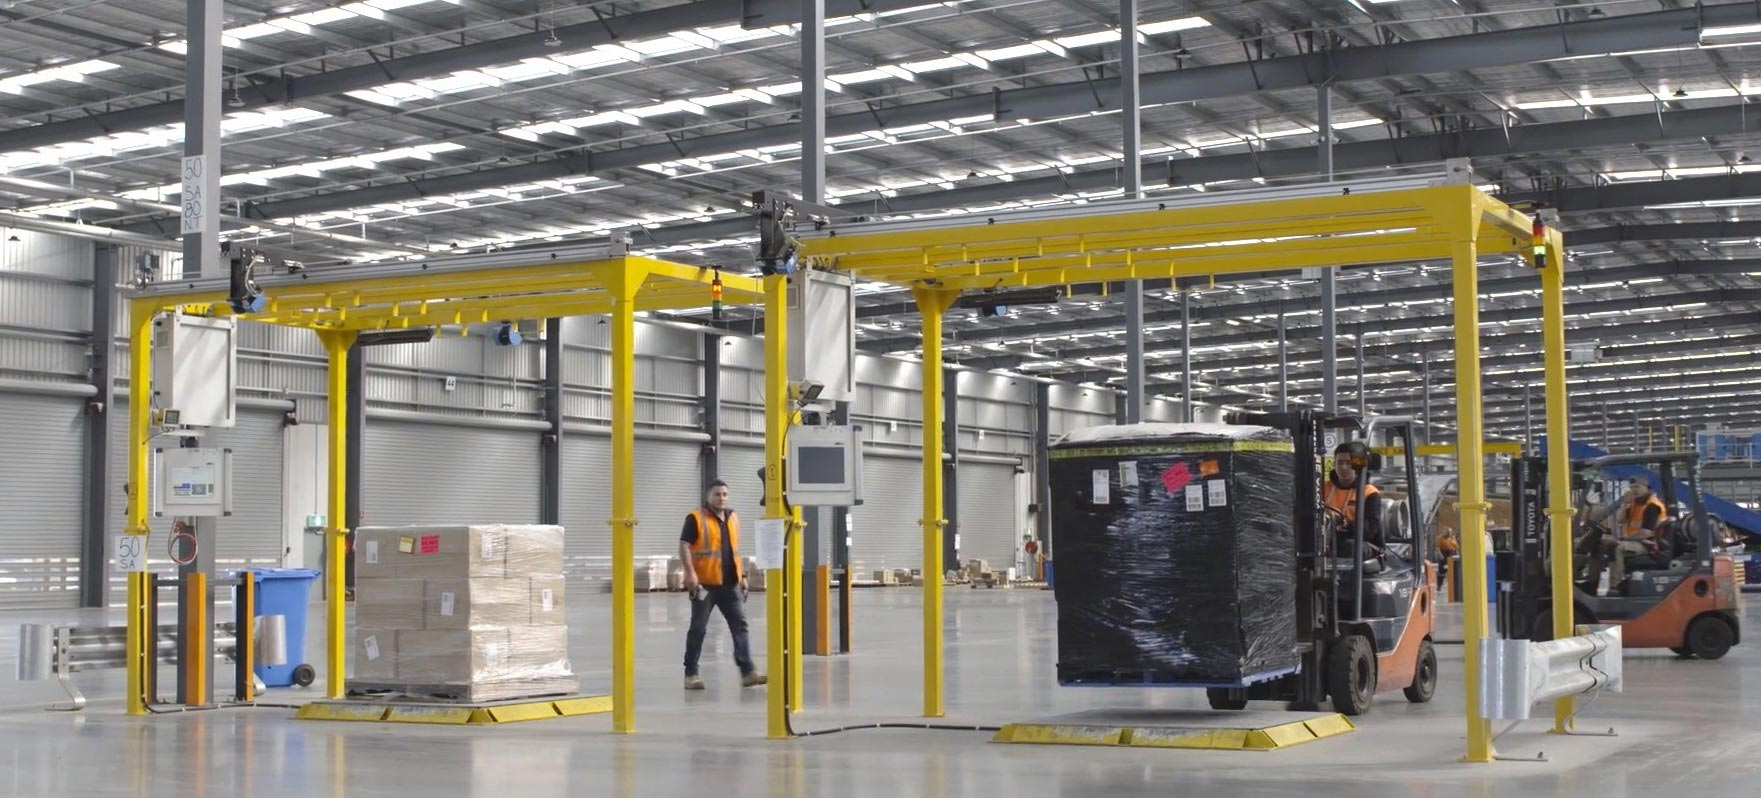 Two CubiScan 1200 AKL legal-for-trade automated pallet dimension systems in use at an Australian express freight service provider.